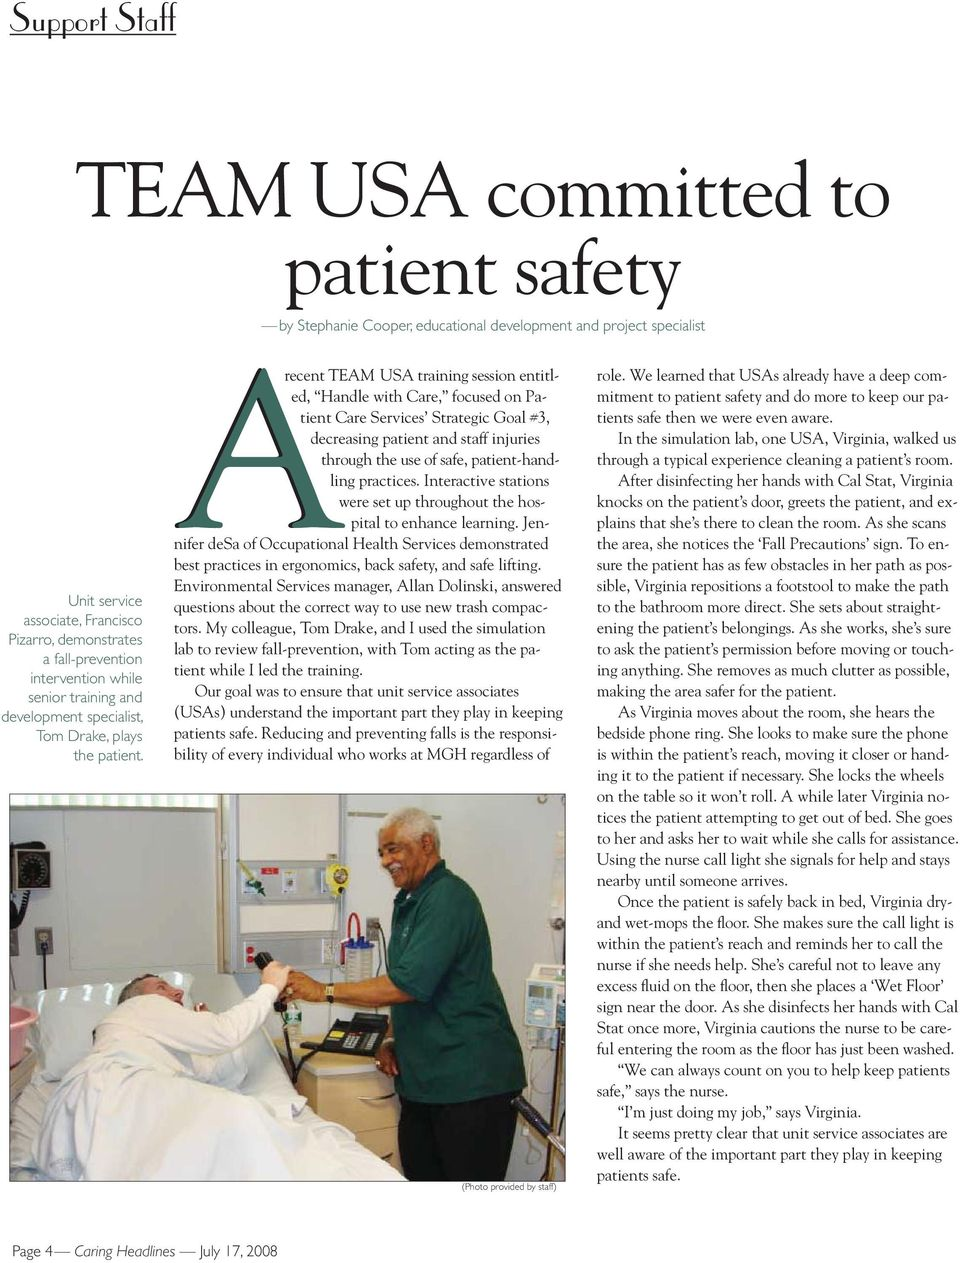 Arecent TEAM USA training session entitled, Handle with Care, focused on Patient Care Services Strategic Goal #3, decreasing patient and staff injuries through the use of safe, patient-handling